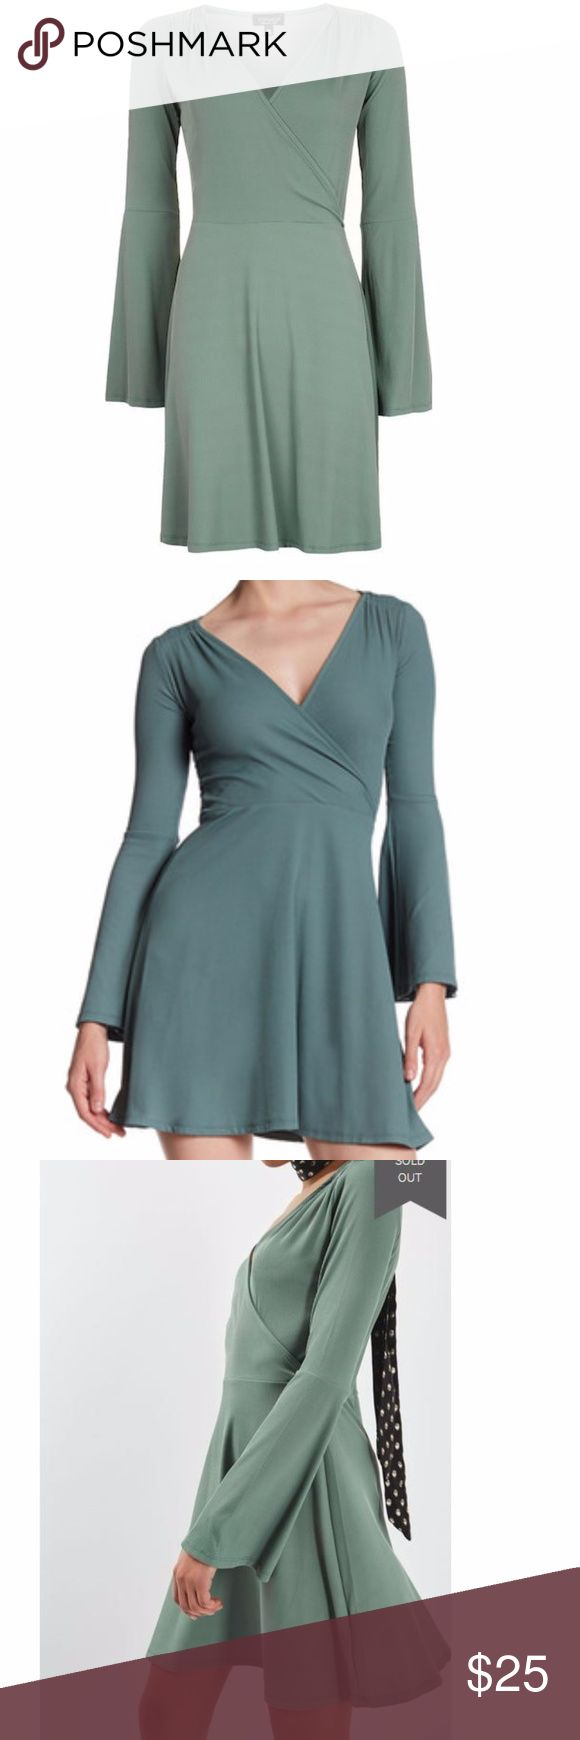 "Topshop Ribbed Bell Sleeve Dress NWT Beautiful brand new with tags Topshop Ribbed Bell Sleeve Dress in ""Duck Egg"" color. Item is in excellent condition with no flaws! Please check out my other listings as I do offer a bundle discount, I love offers! Topshop Dresses Midi"